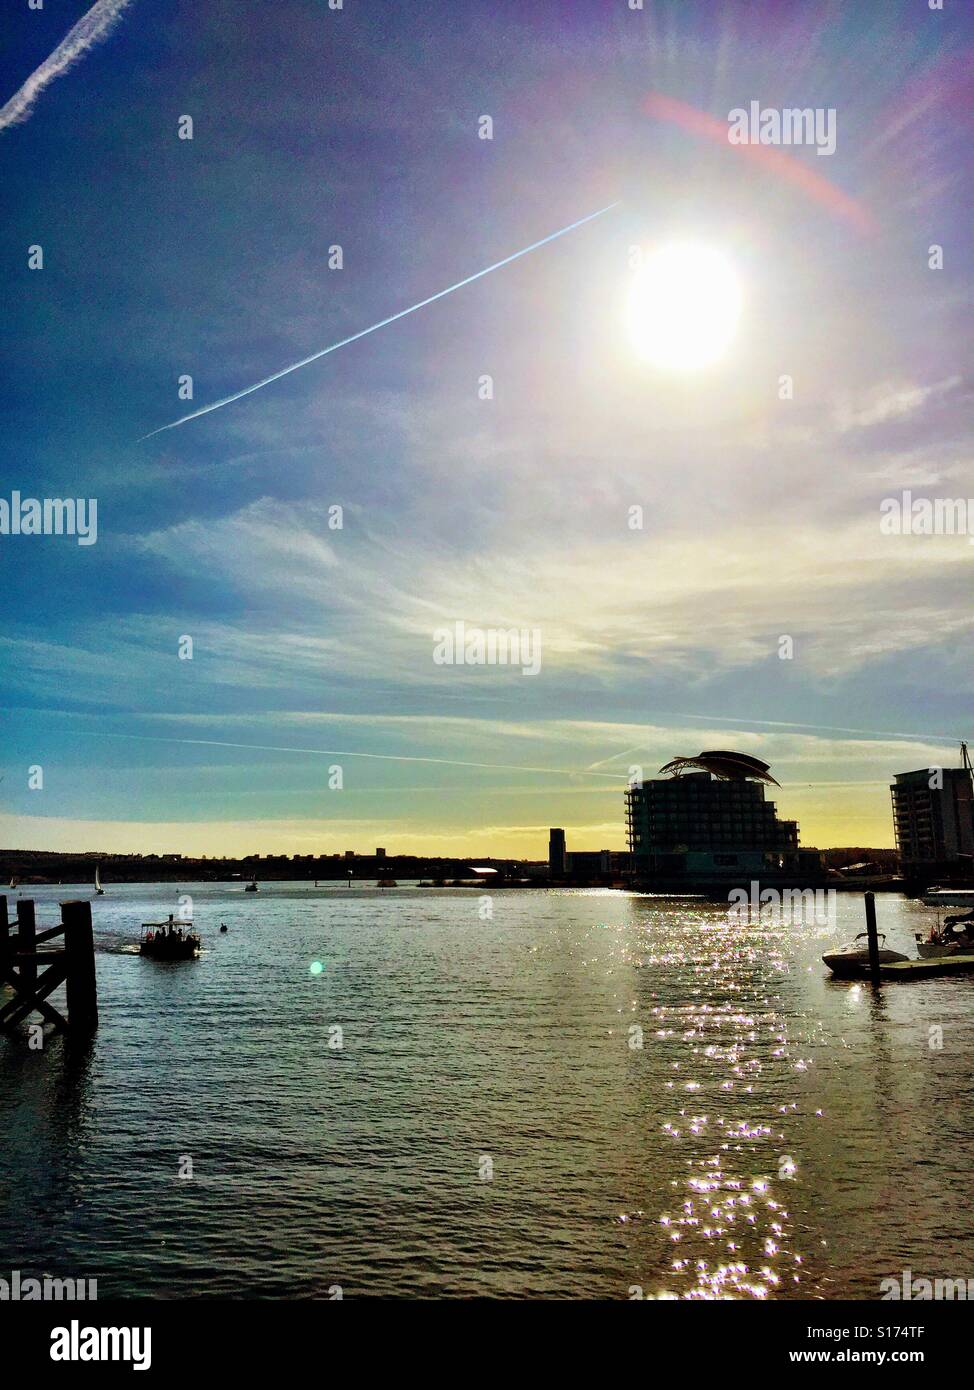 Cardiff Bay in the summer sunshine, looking towards Penarth. - Stock Image